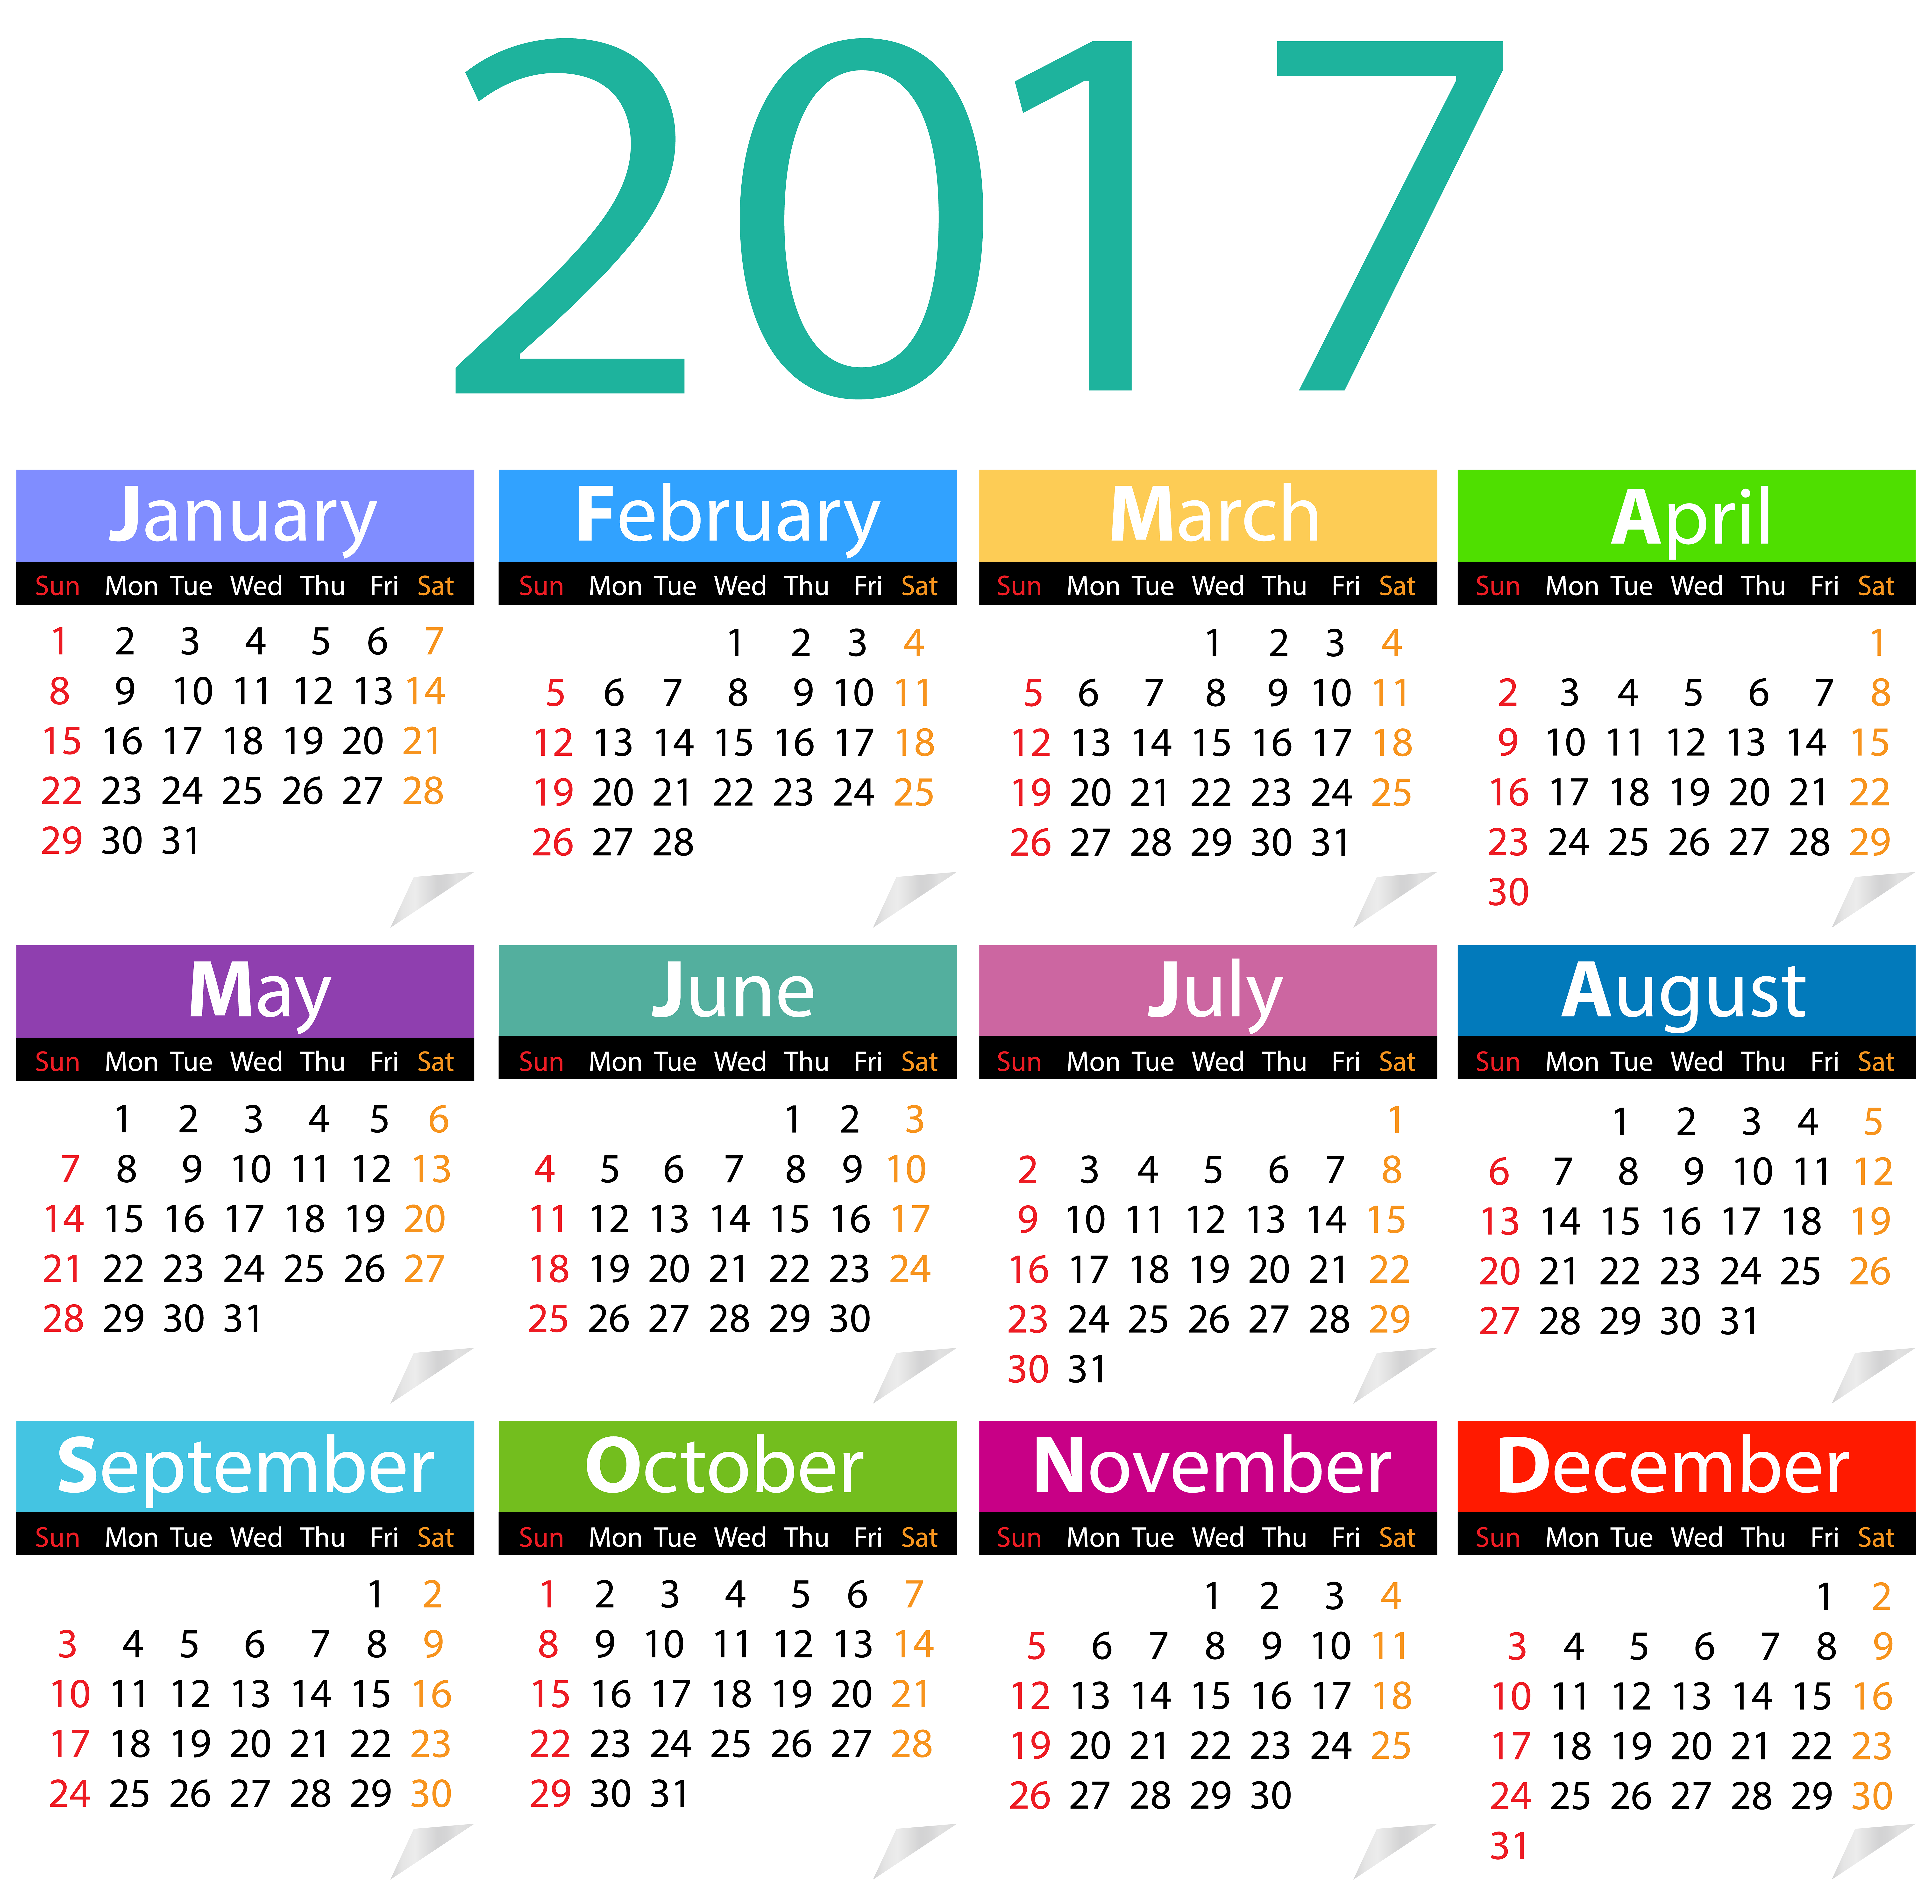 Calendar clipart august picture transparent library Huge Collection of '2017 calendar clipart'. Download more than 40 ... picture transparent library